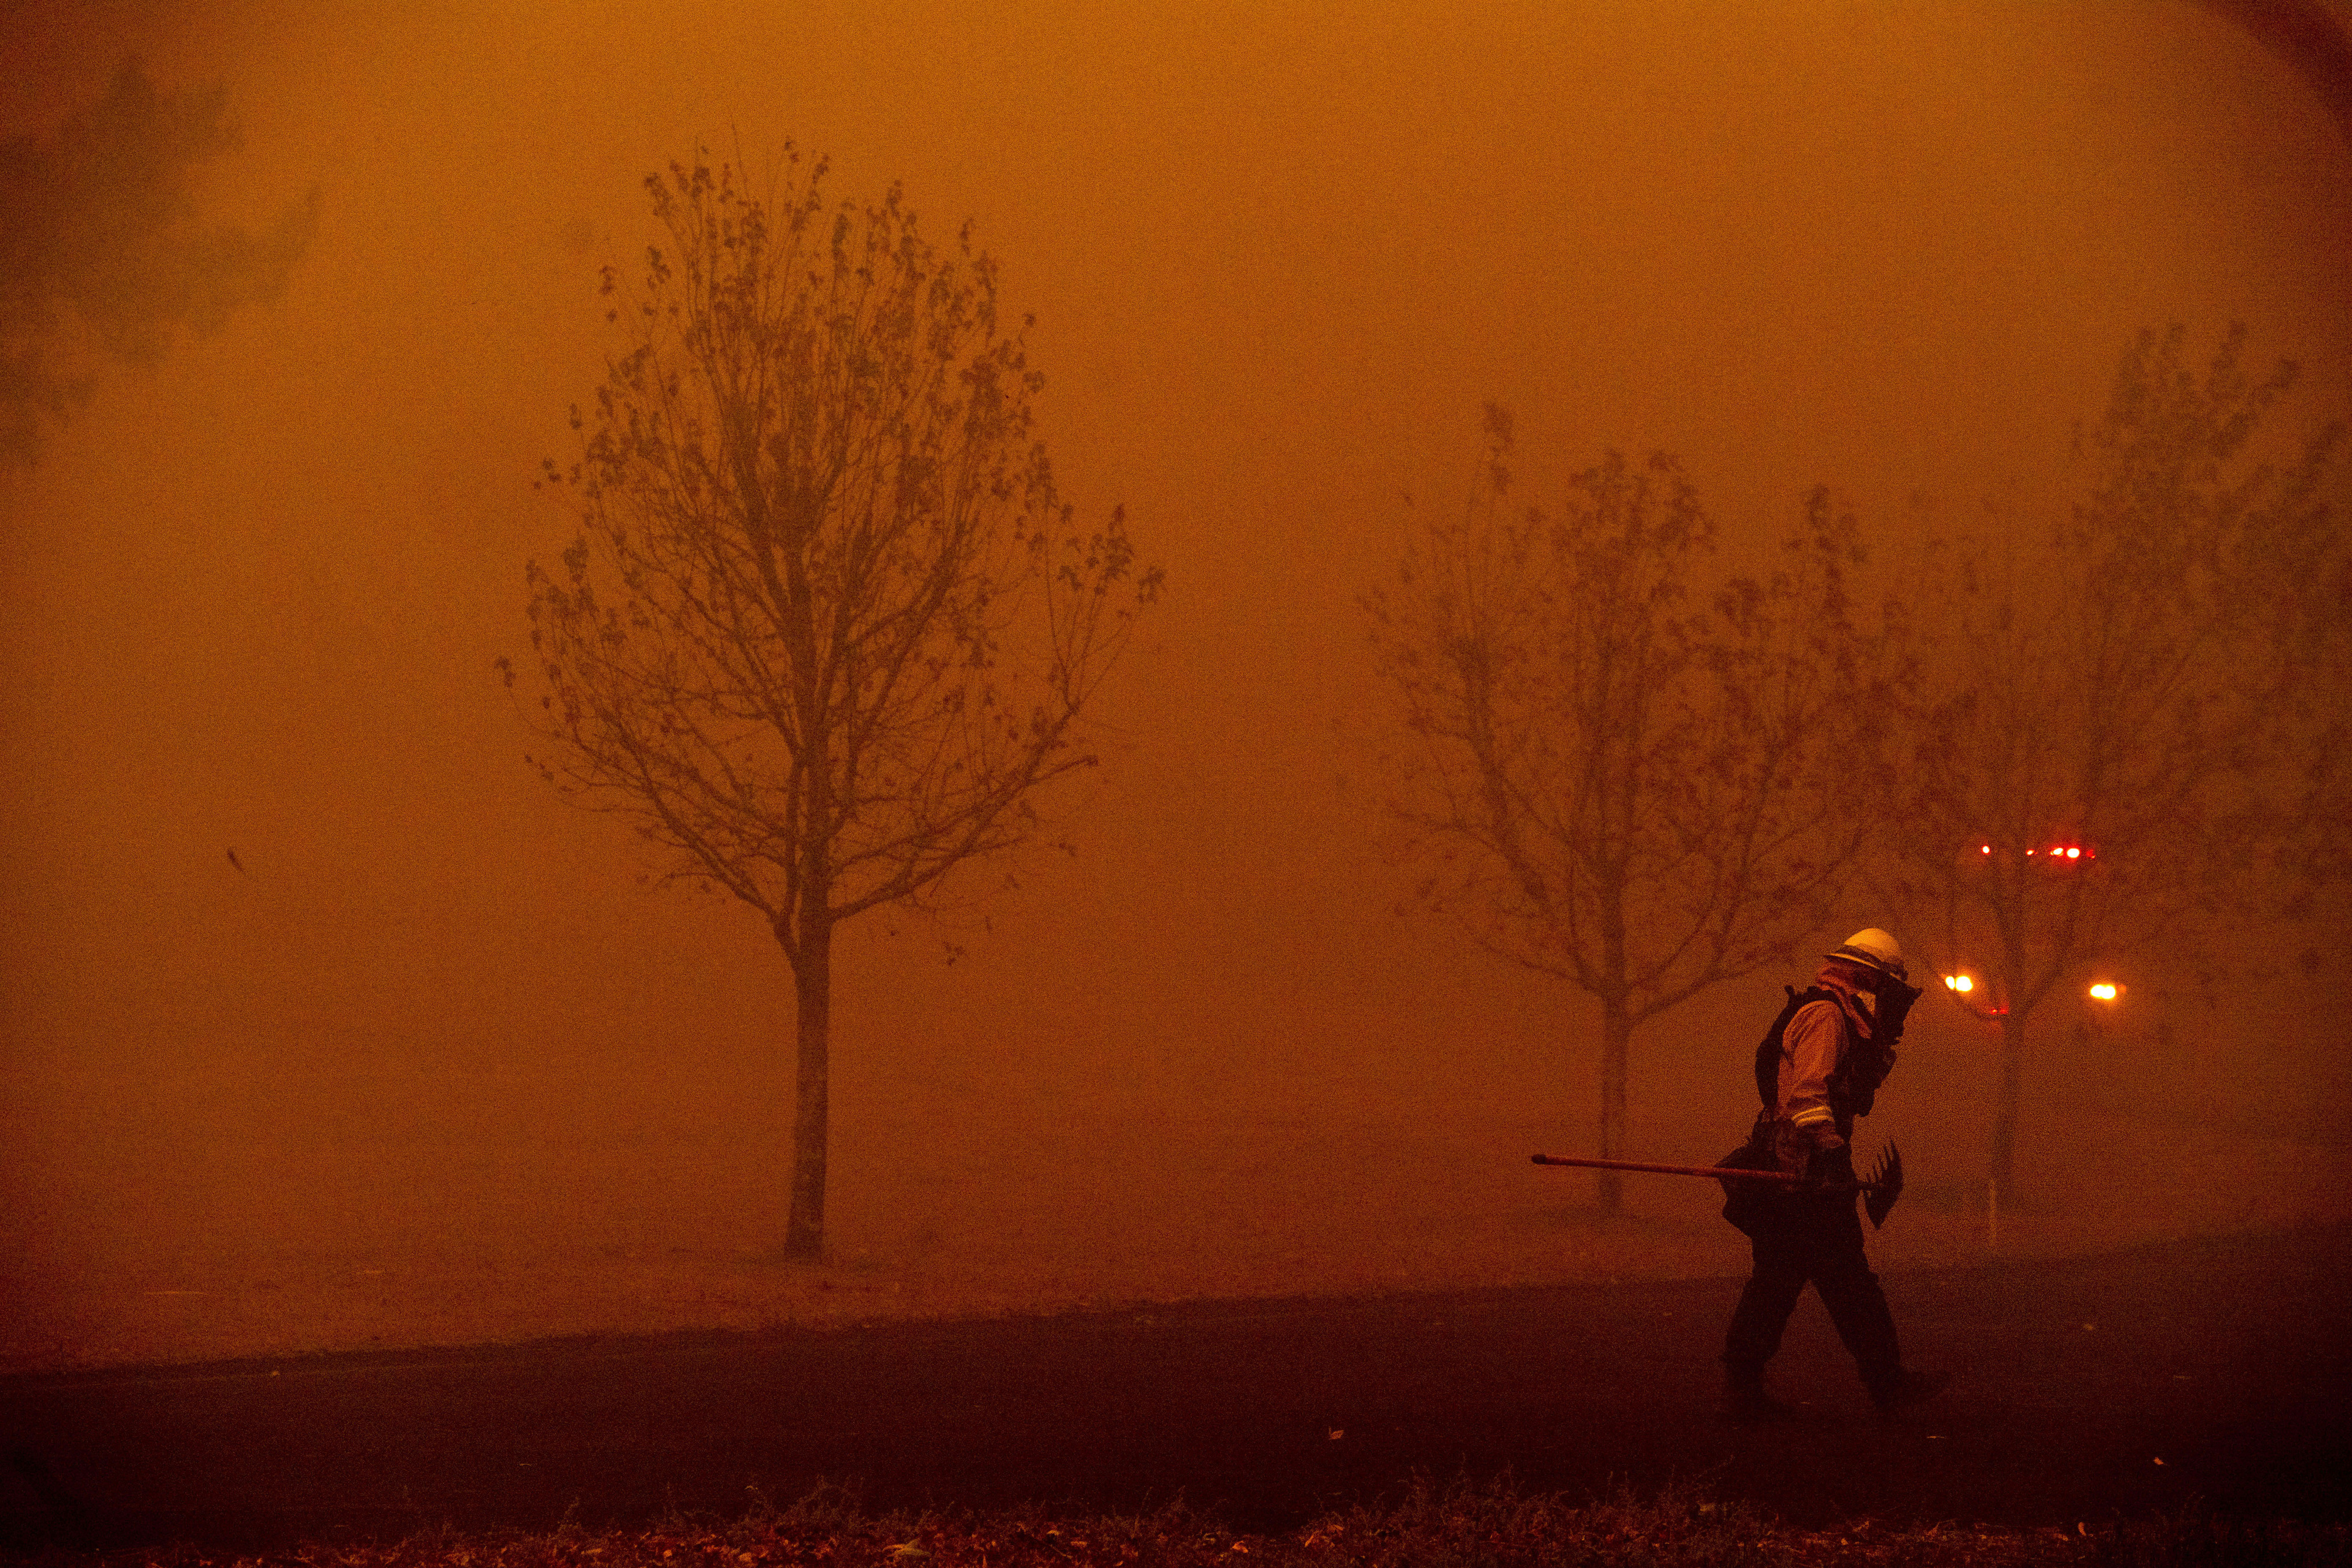 A firefighter battles a wildfire called the Kincade Fire in Healdsburg, Calif., Sunday, Oct. 27, 2019. With ferocious winds driving multiple wildfires through bone-dry vegetation and nearly 200,000 people ordered to leave their homes, California's governor declared a statewide emergency Sunday. (AP Photo/Noah Berger)